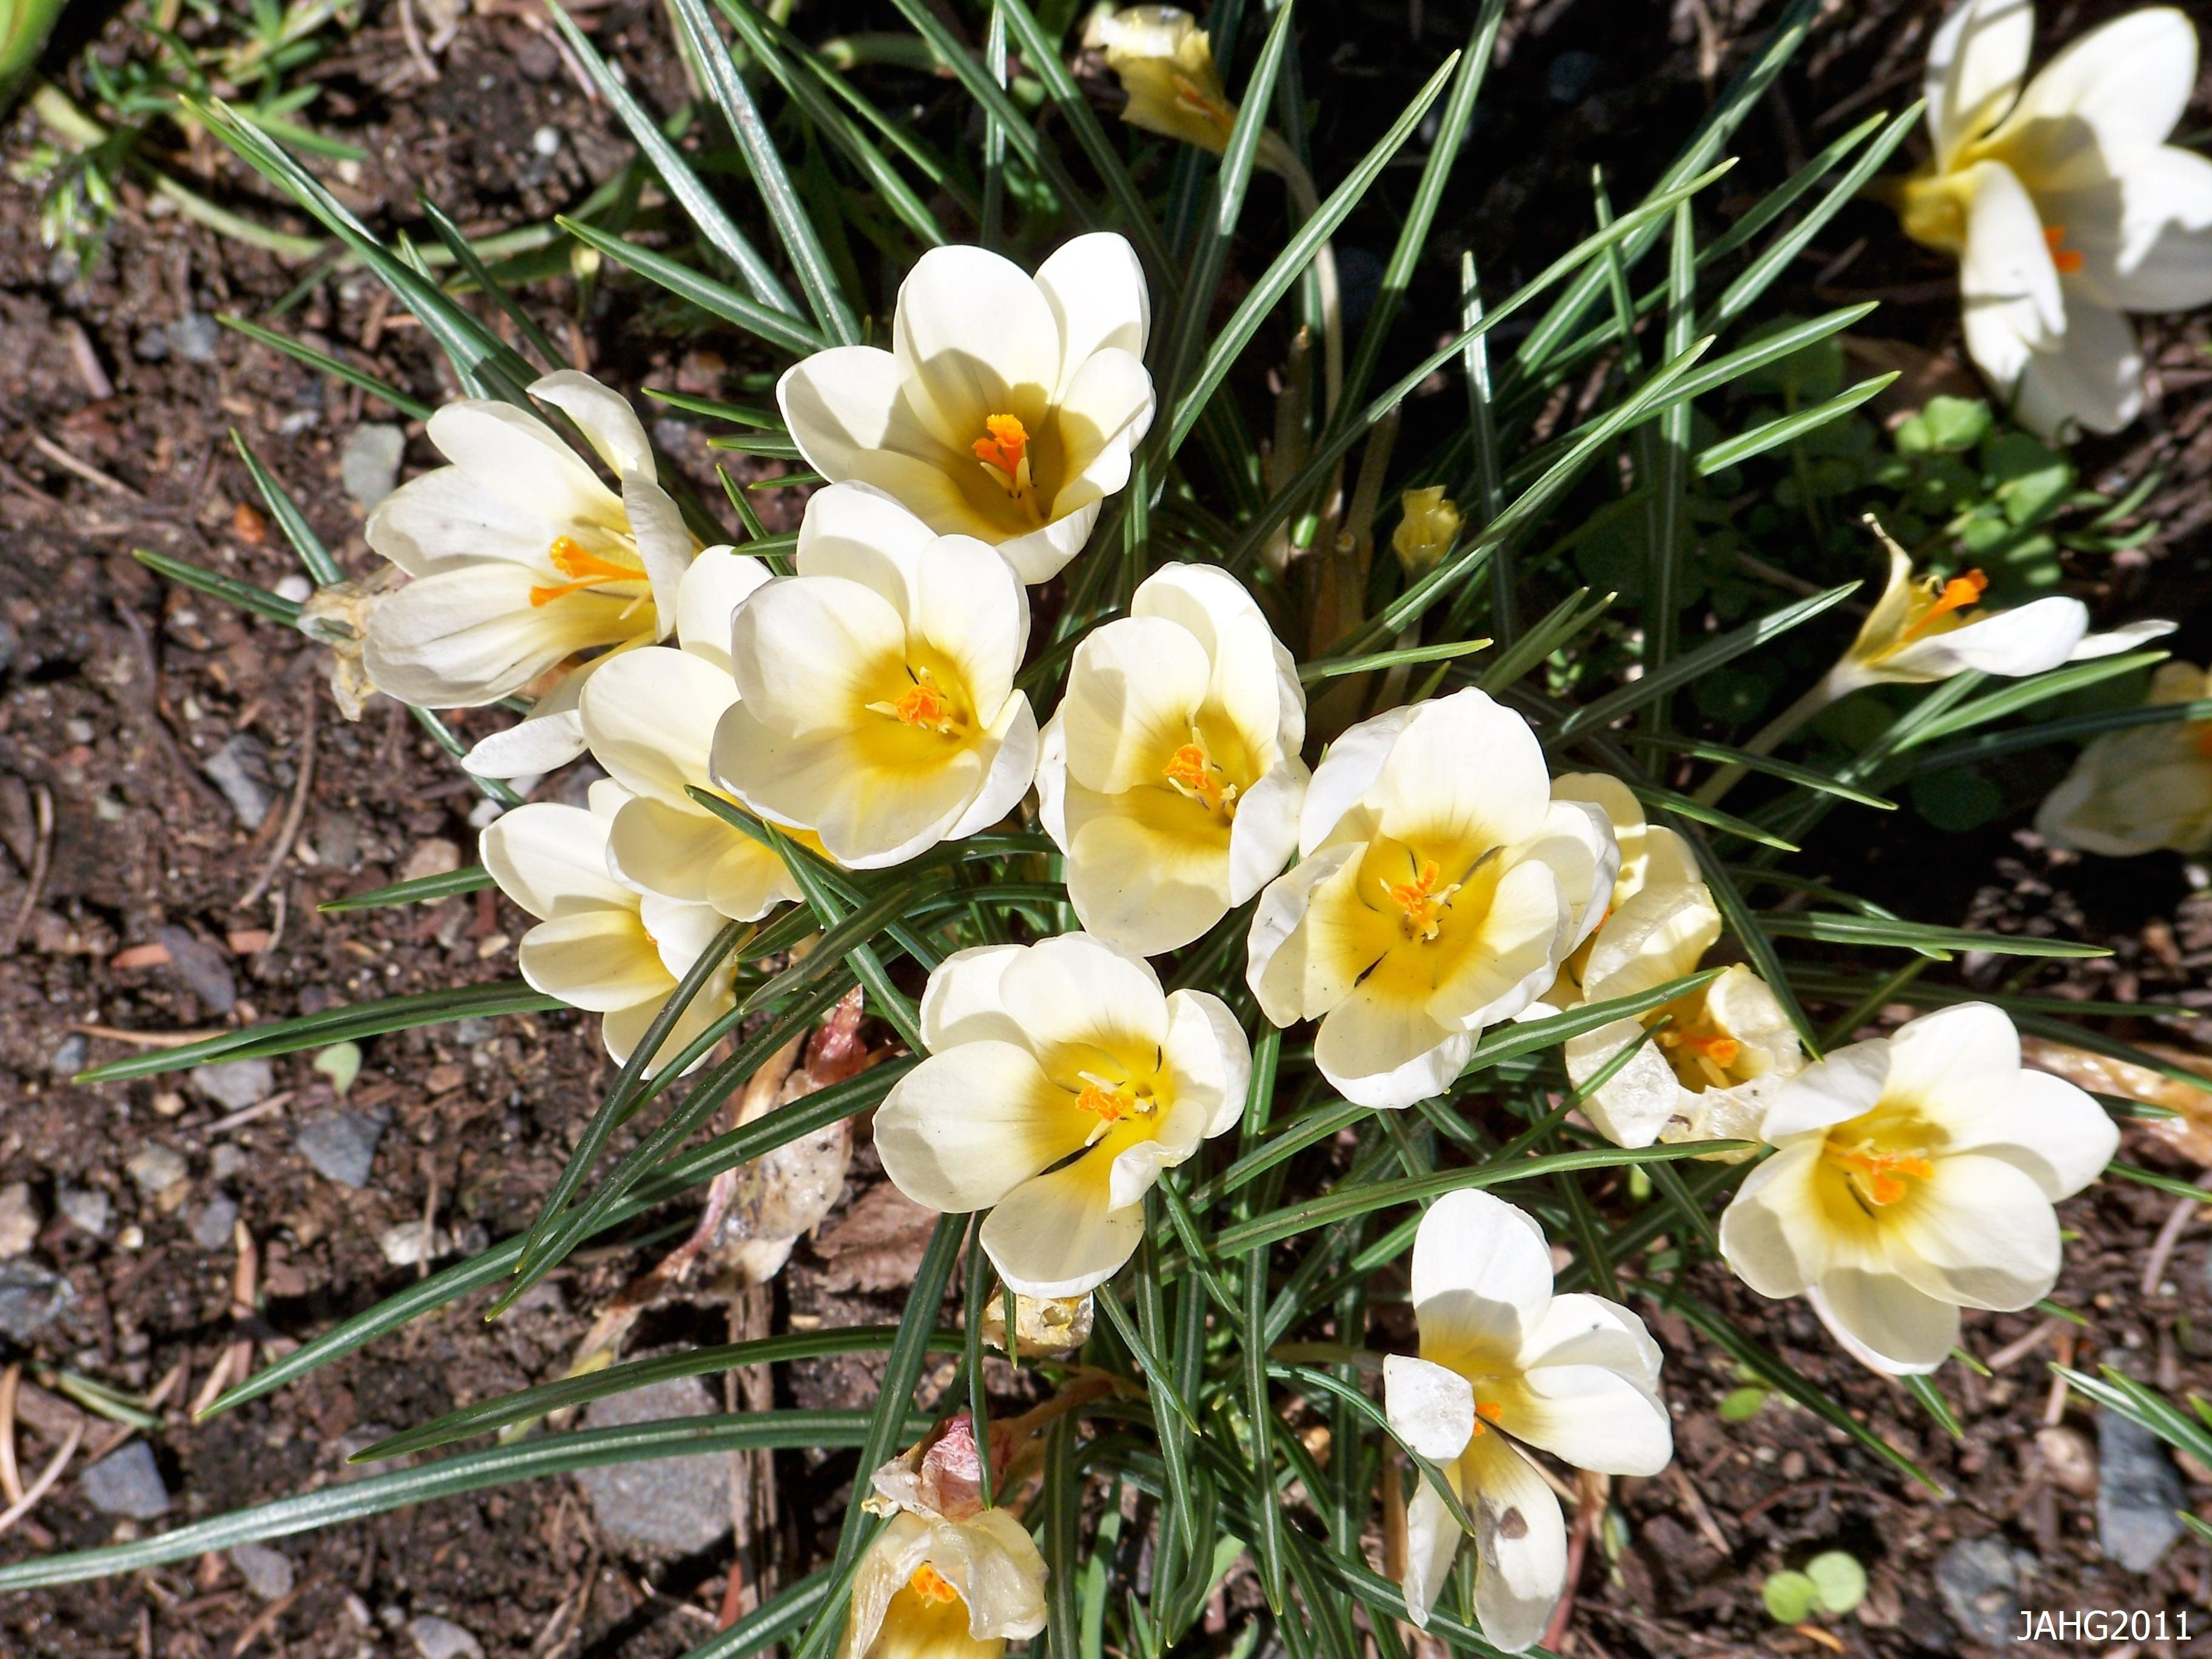 Yellow crocus flower snow image check out the free plant yellow crocus flower snow image check out the free plant identification mobile app at gardenanswers mightylinksfo